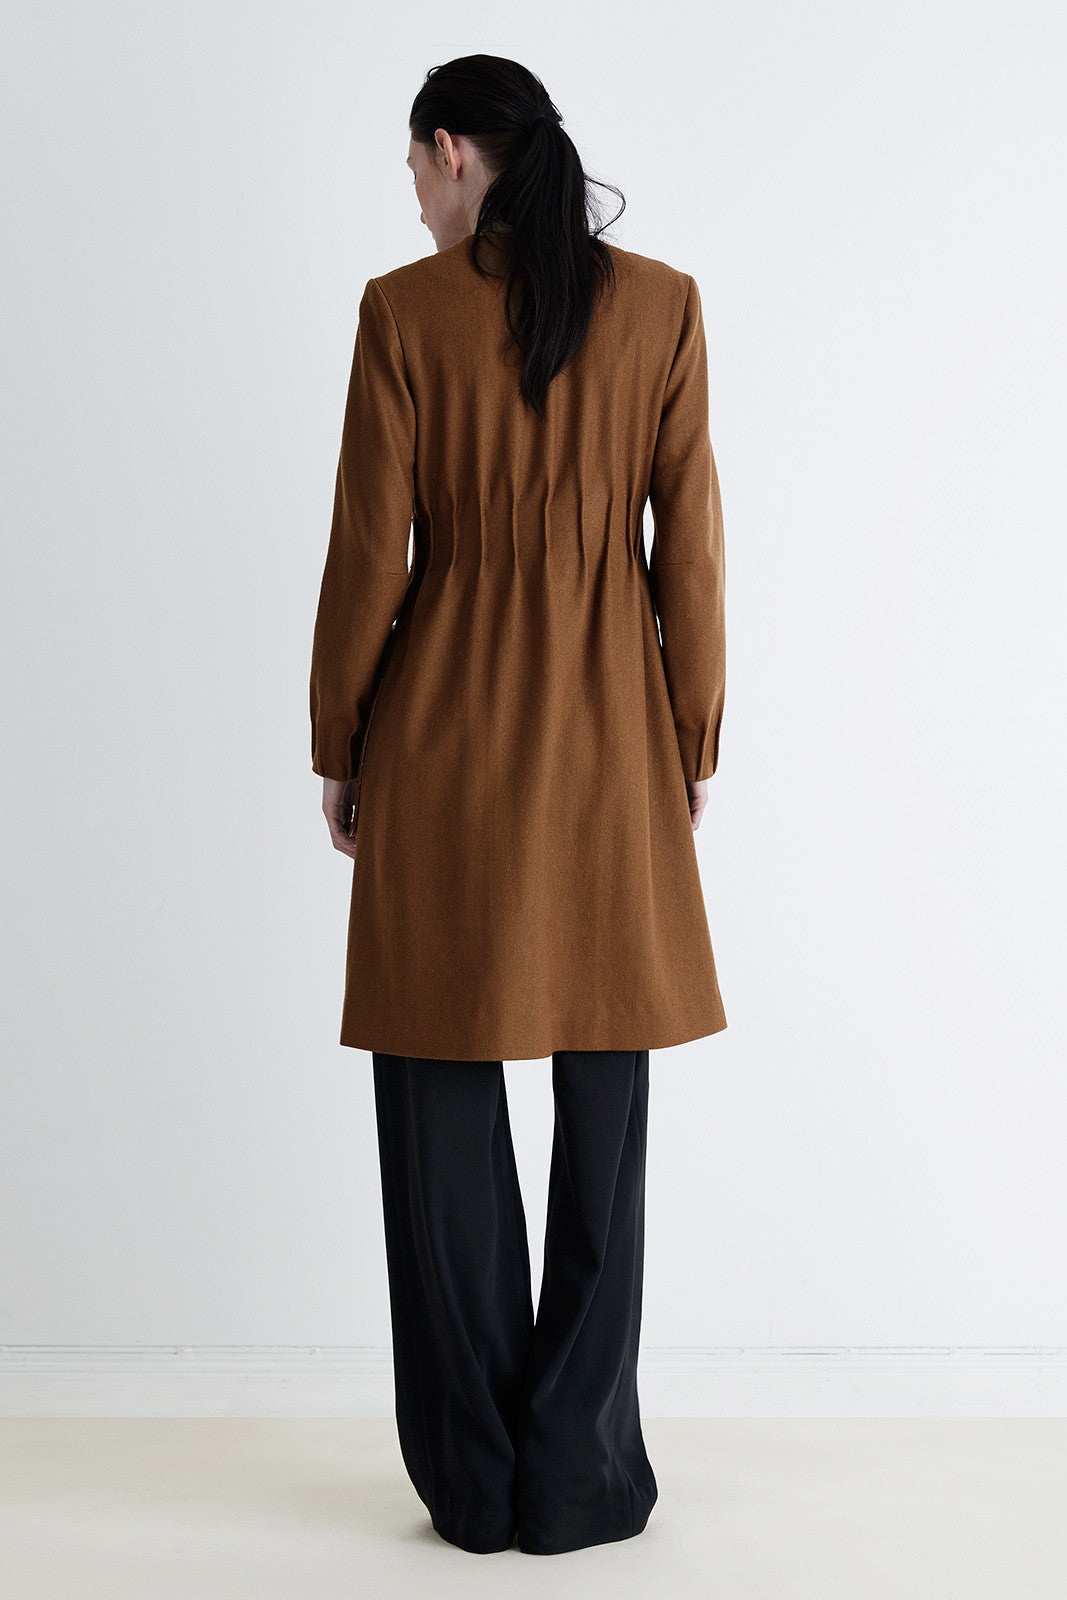 The long flap coat